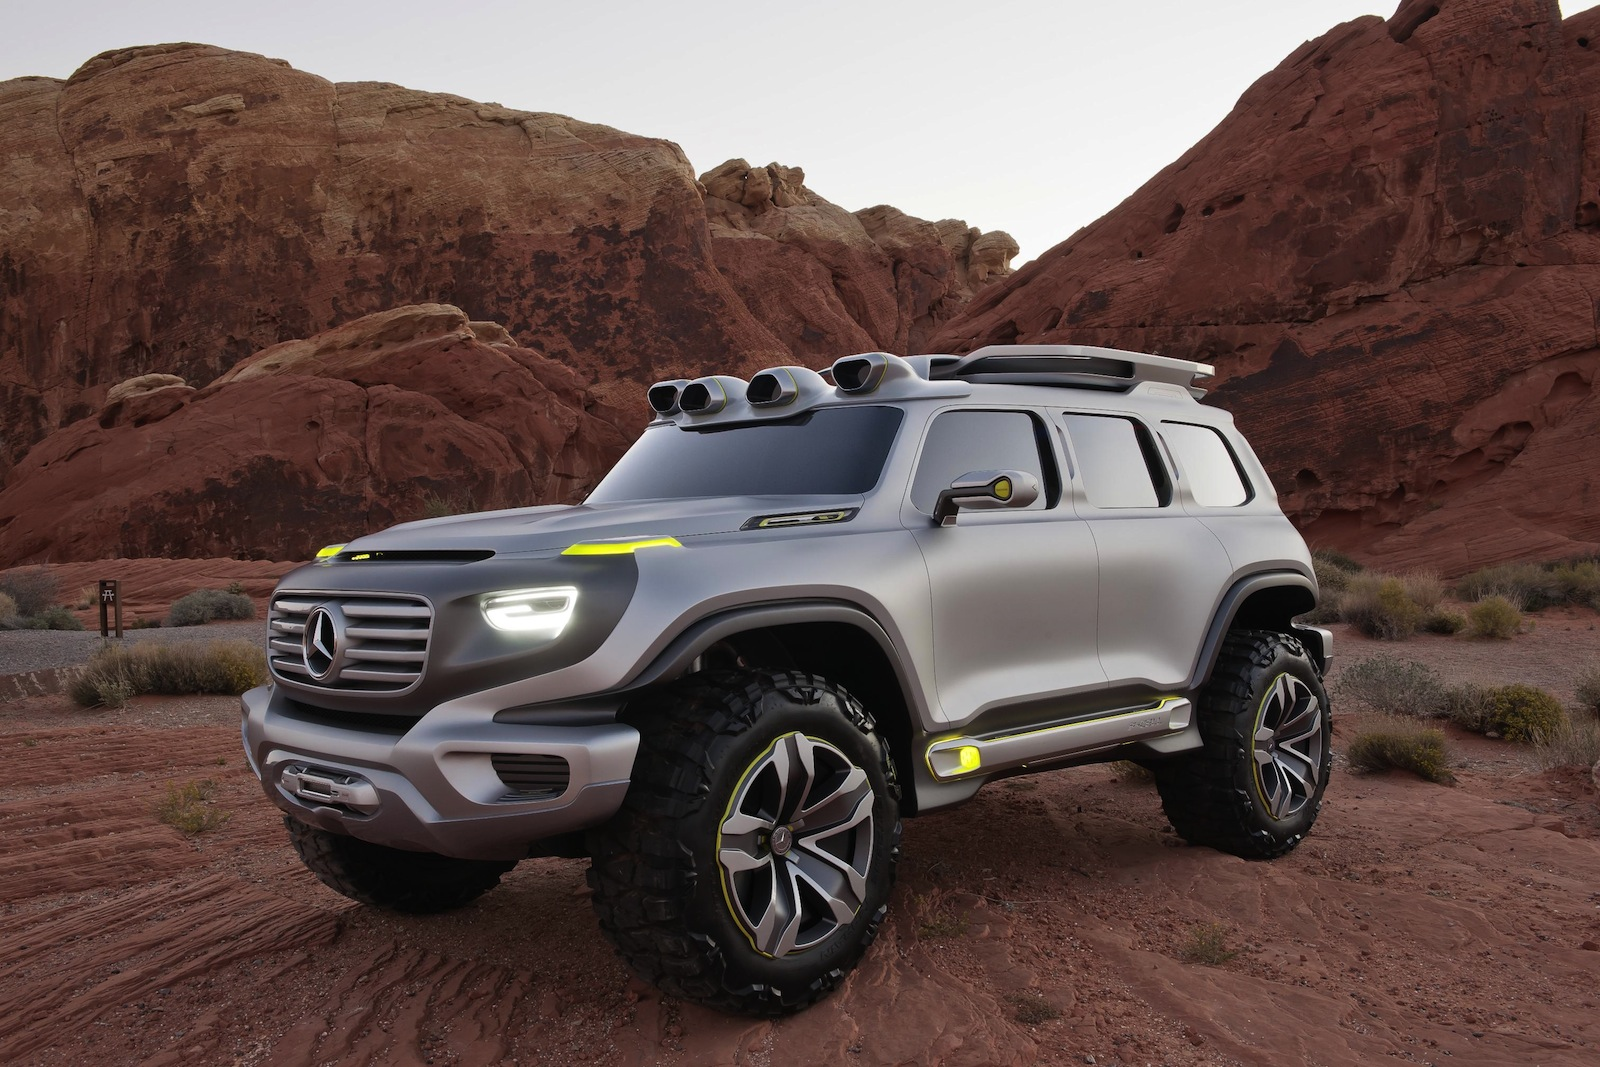 Mercedes Benz Ener G Force Off Road Concept 100409488 H Jpg